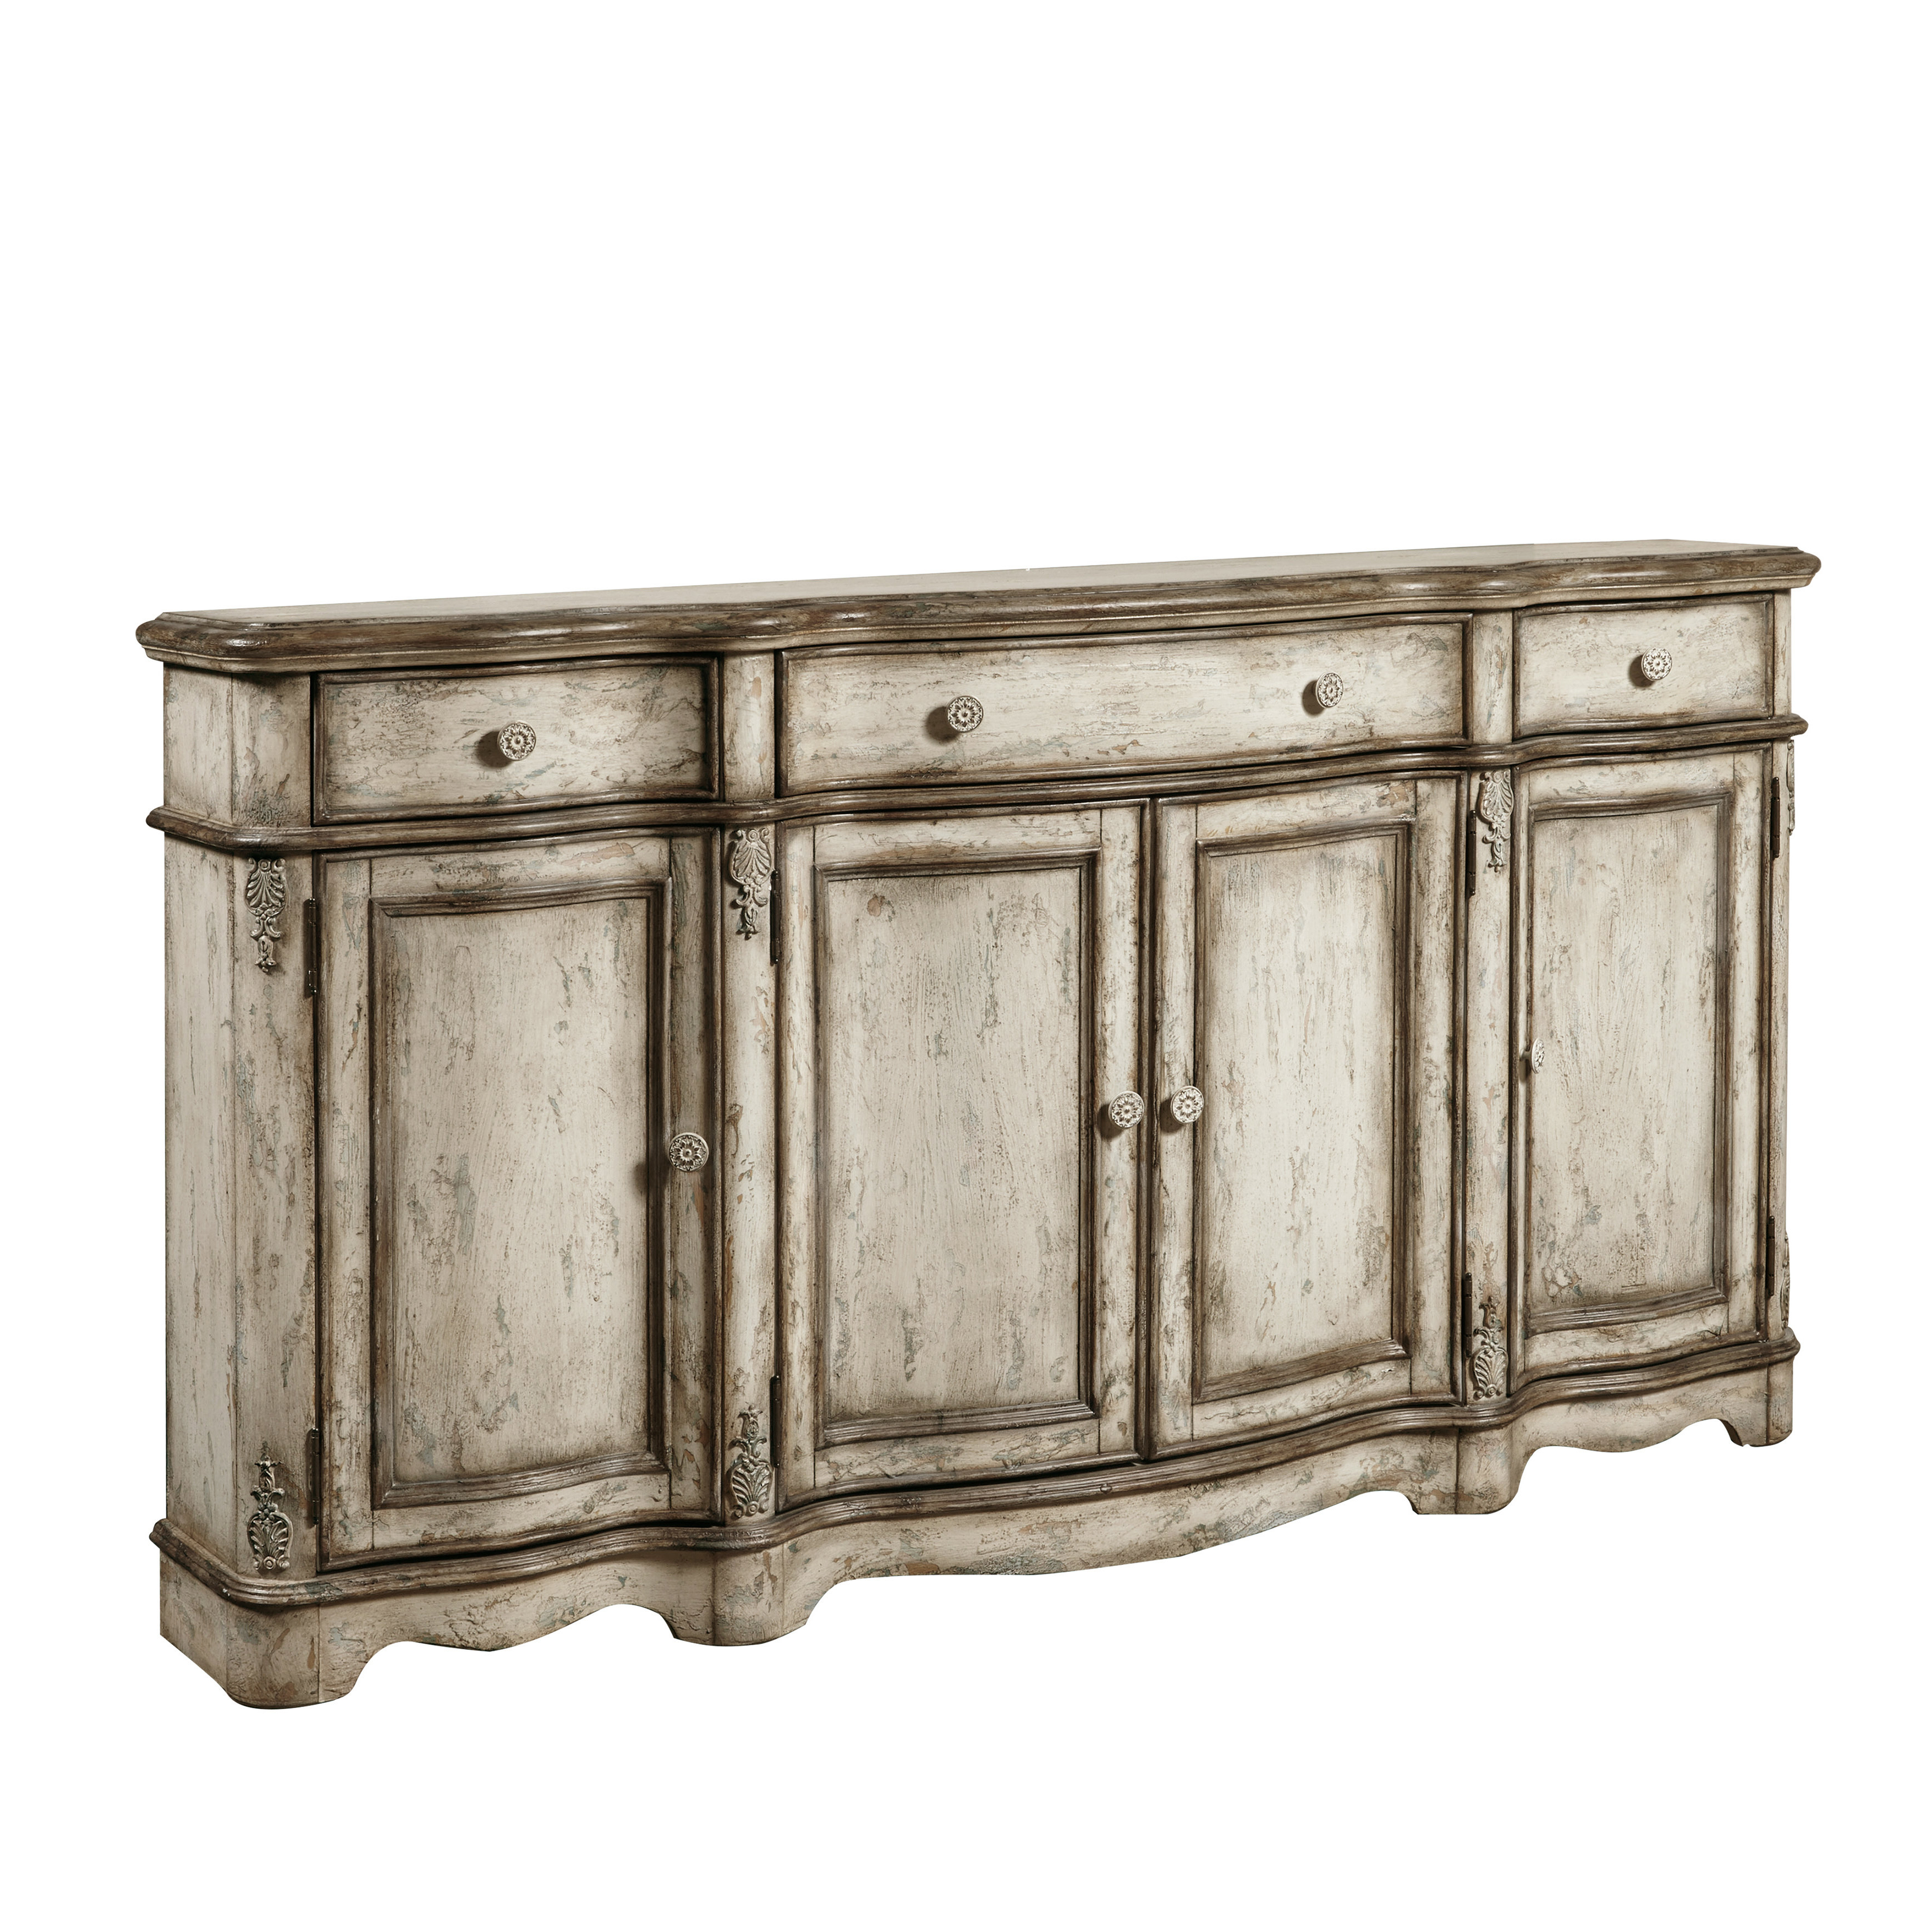 Farmhouse & Rustic Assembled Sideboards & Buffets | Birch Lane In Kronburgh Sideboards (View 6 of 20)